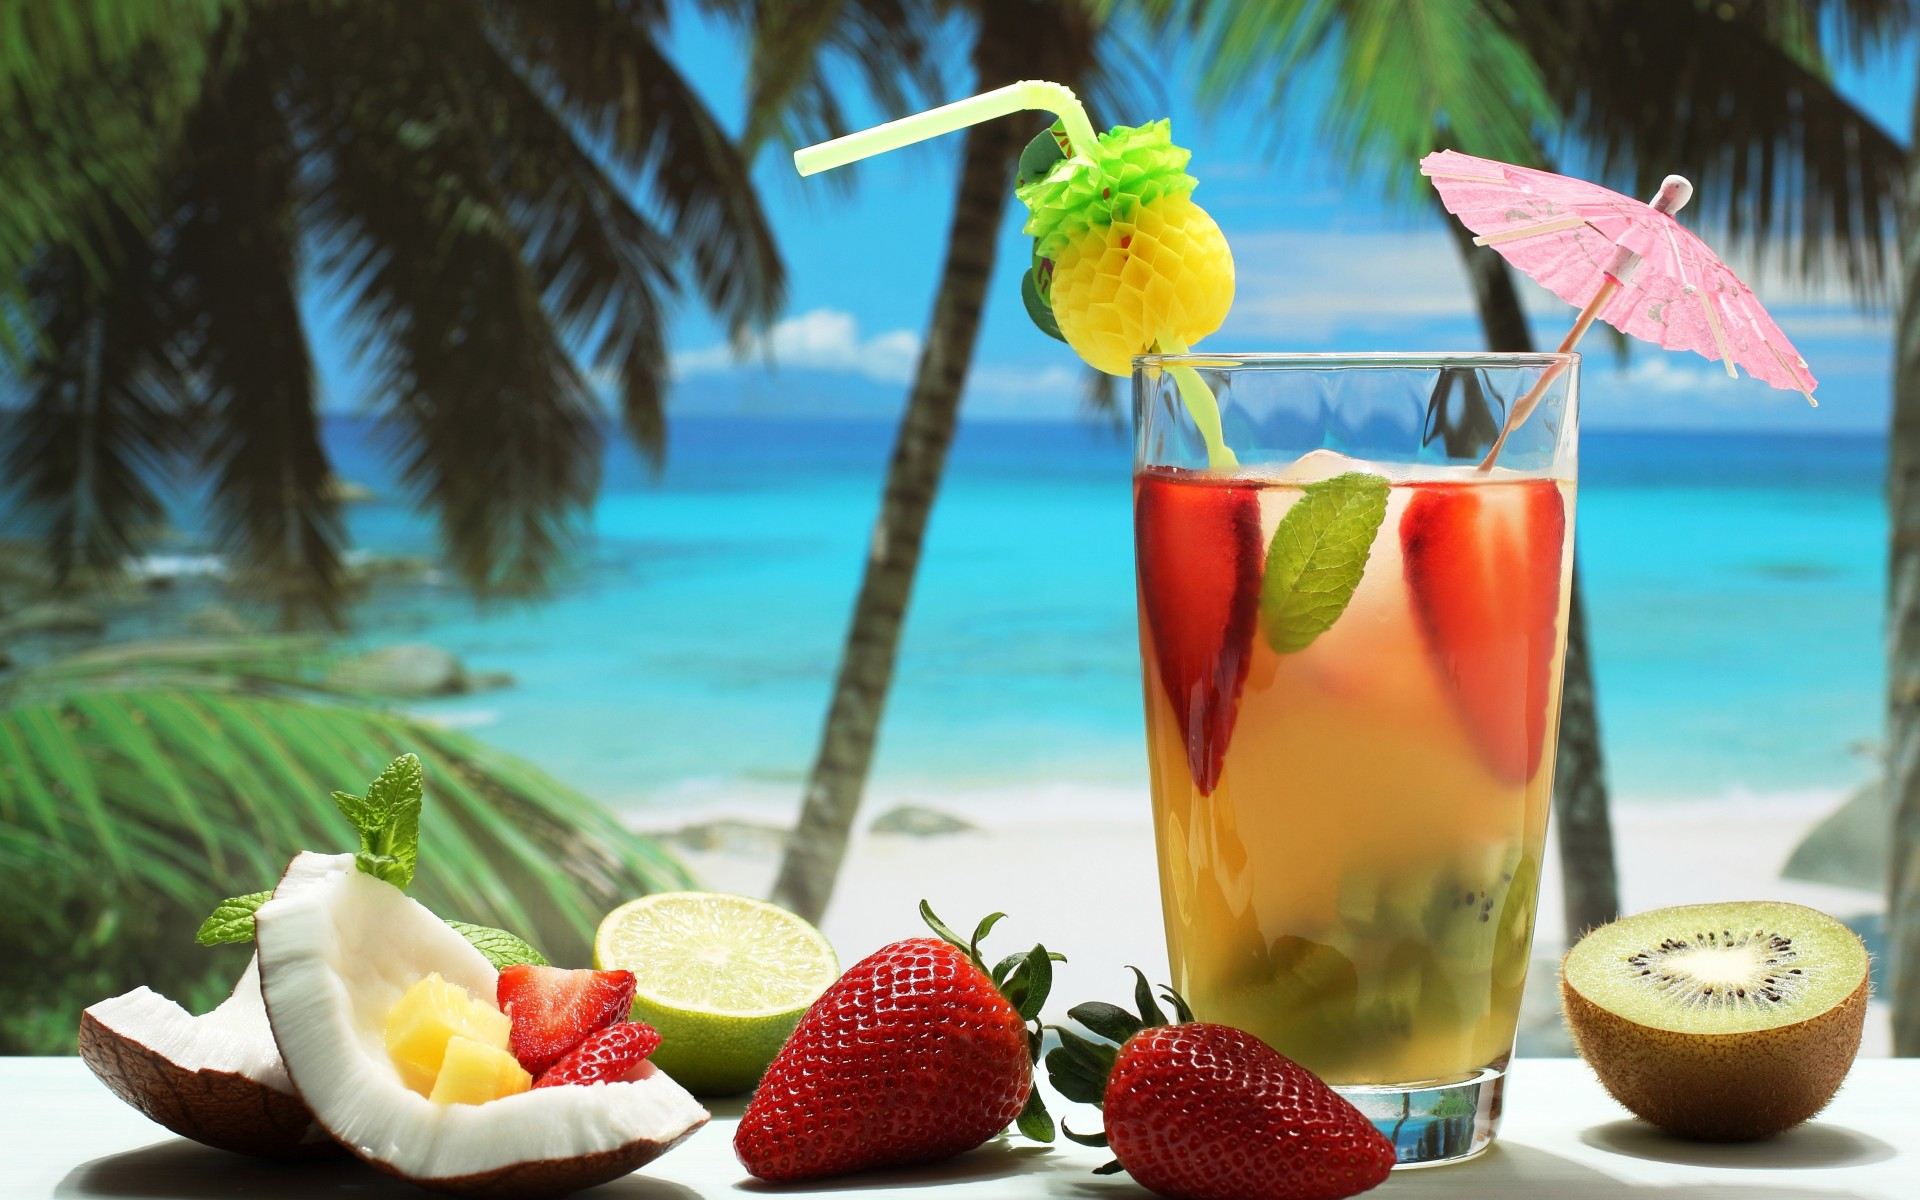 General 1920x1200 cocktails drink fruit coconuts strawberries kiwi (fruit) trees tropical